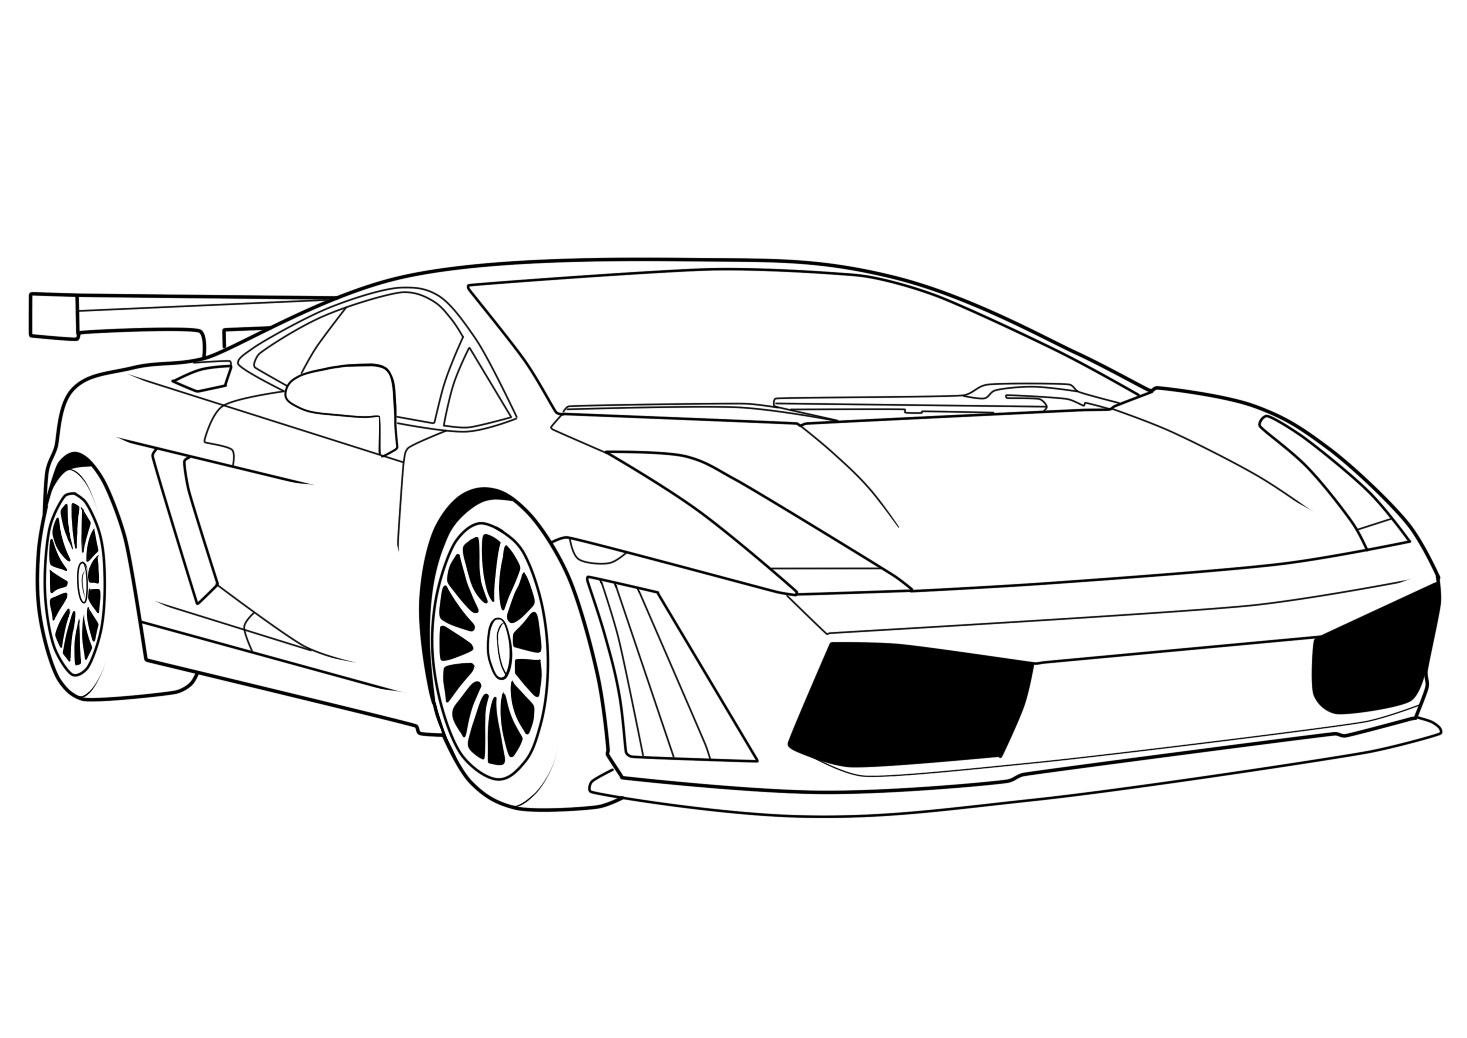 cars colouring pages to print 4 disney cars free printable coloring pages pages print cars to colouring